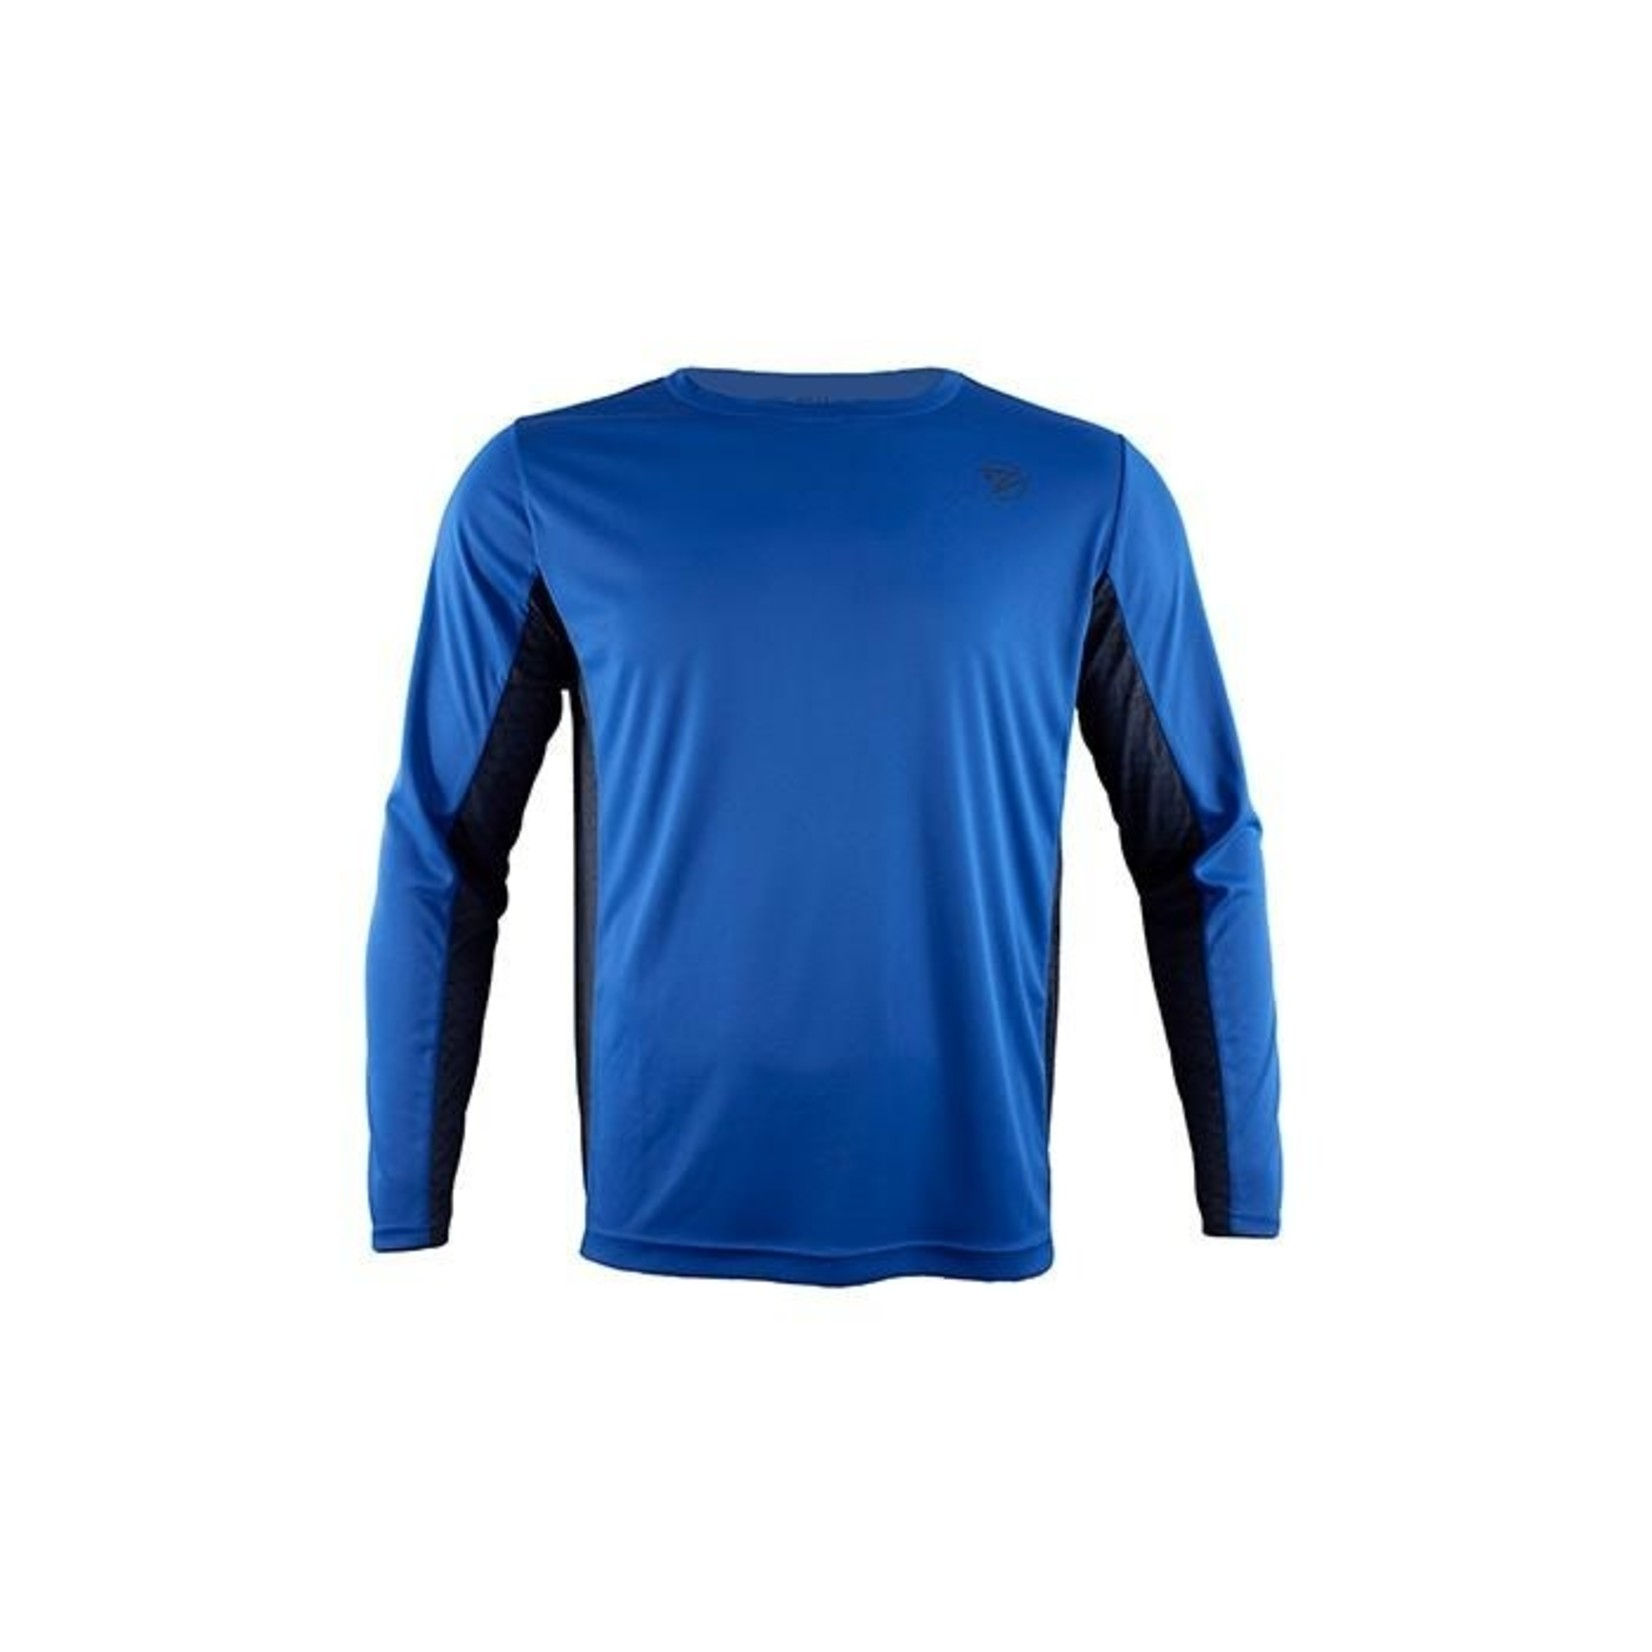 MEN'S WATERMAN LONG SLEEVE